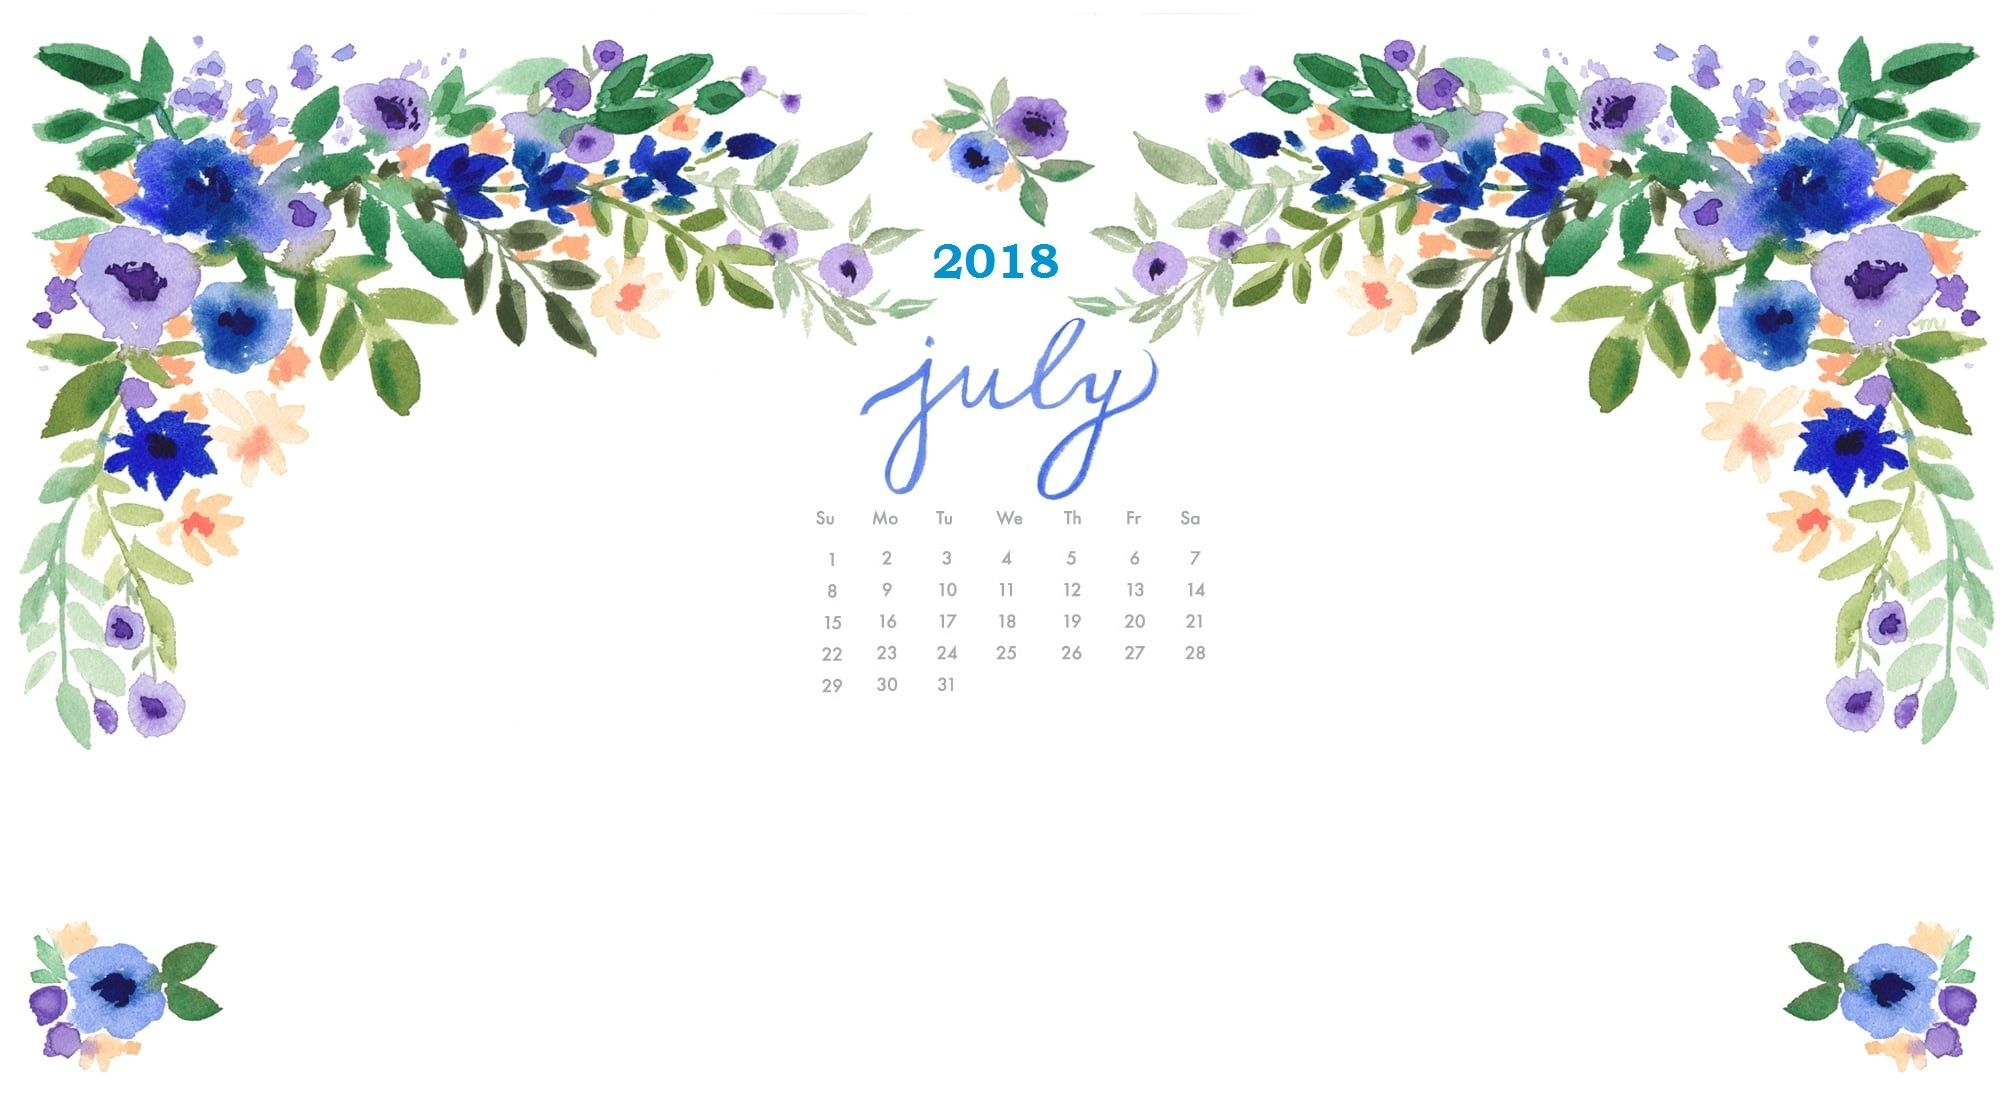 july 2019calendar wallpapers wallpaper cave::July 2019 iPhone Calendar Wallpaper